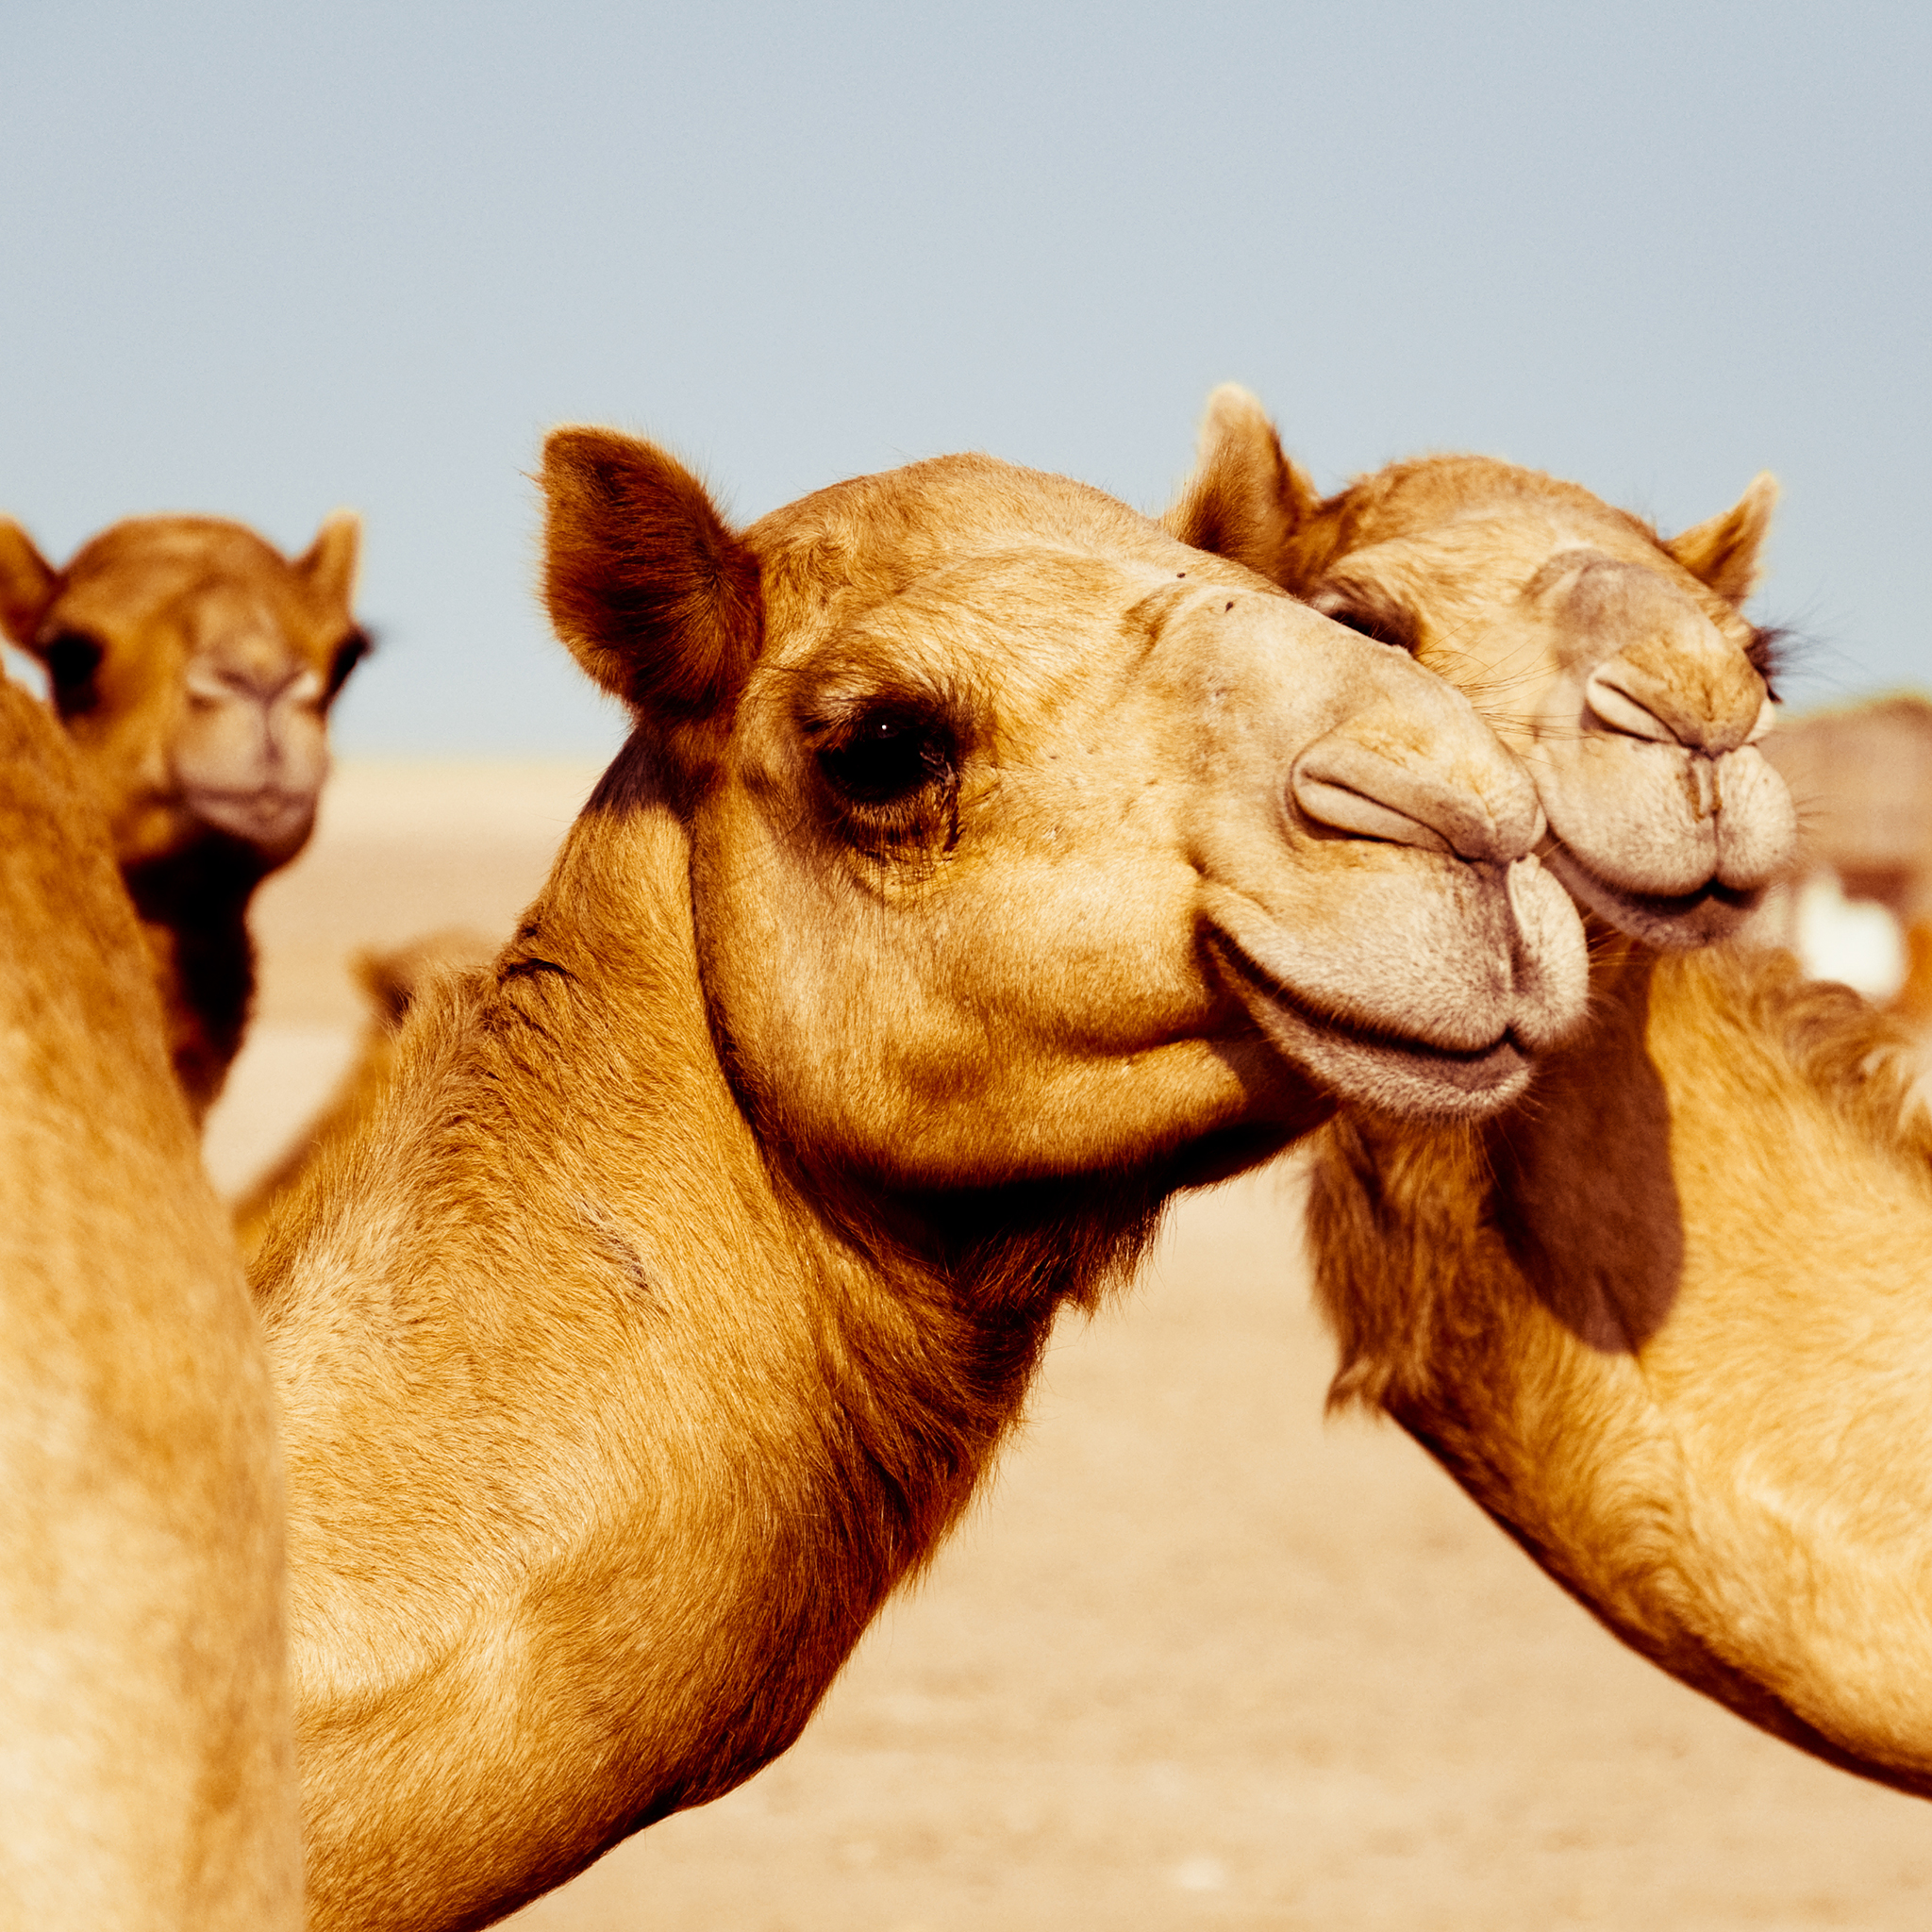 photo courtesy of Gettyimages-camels-maya